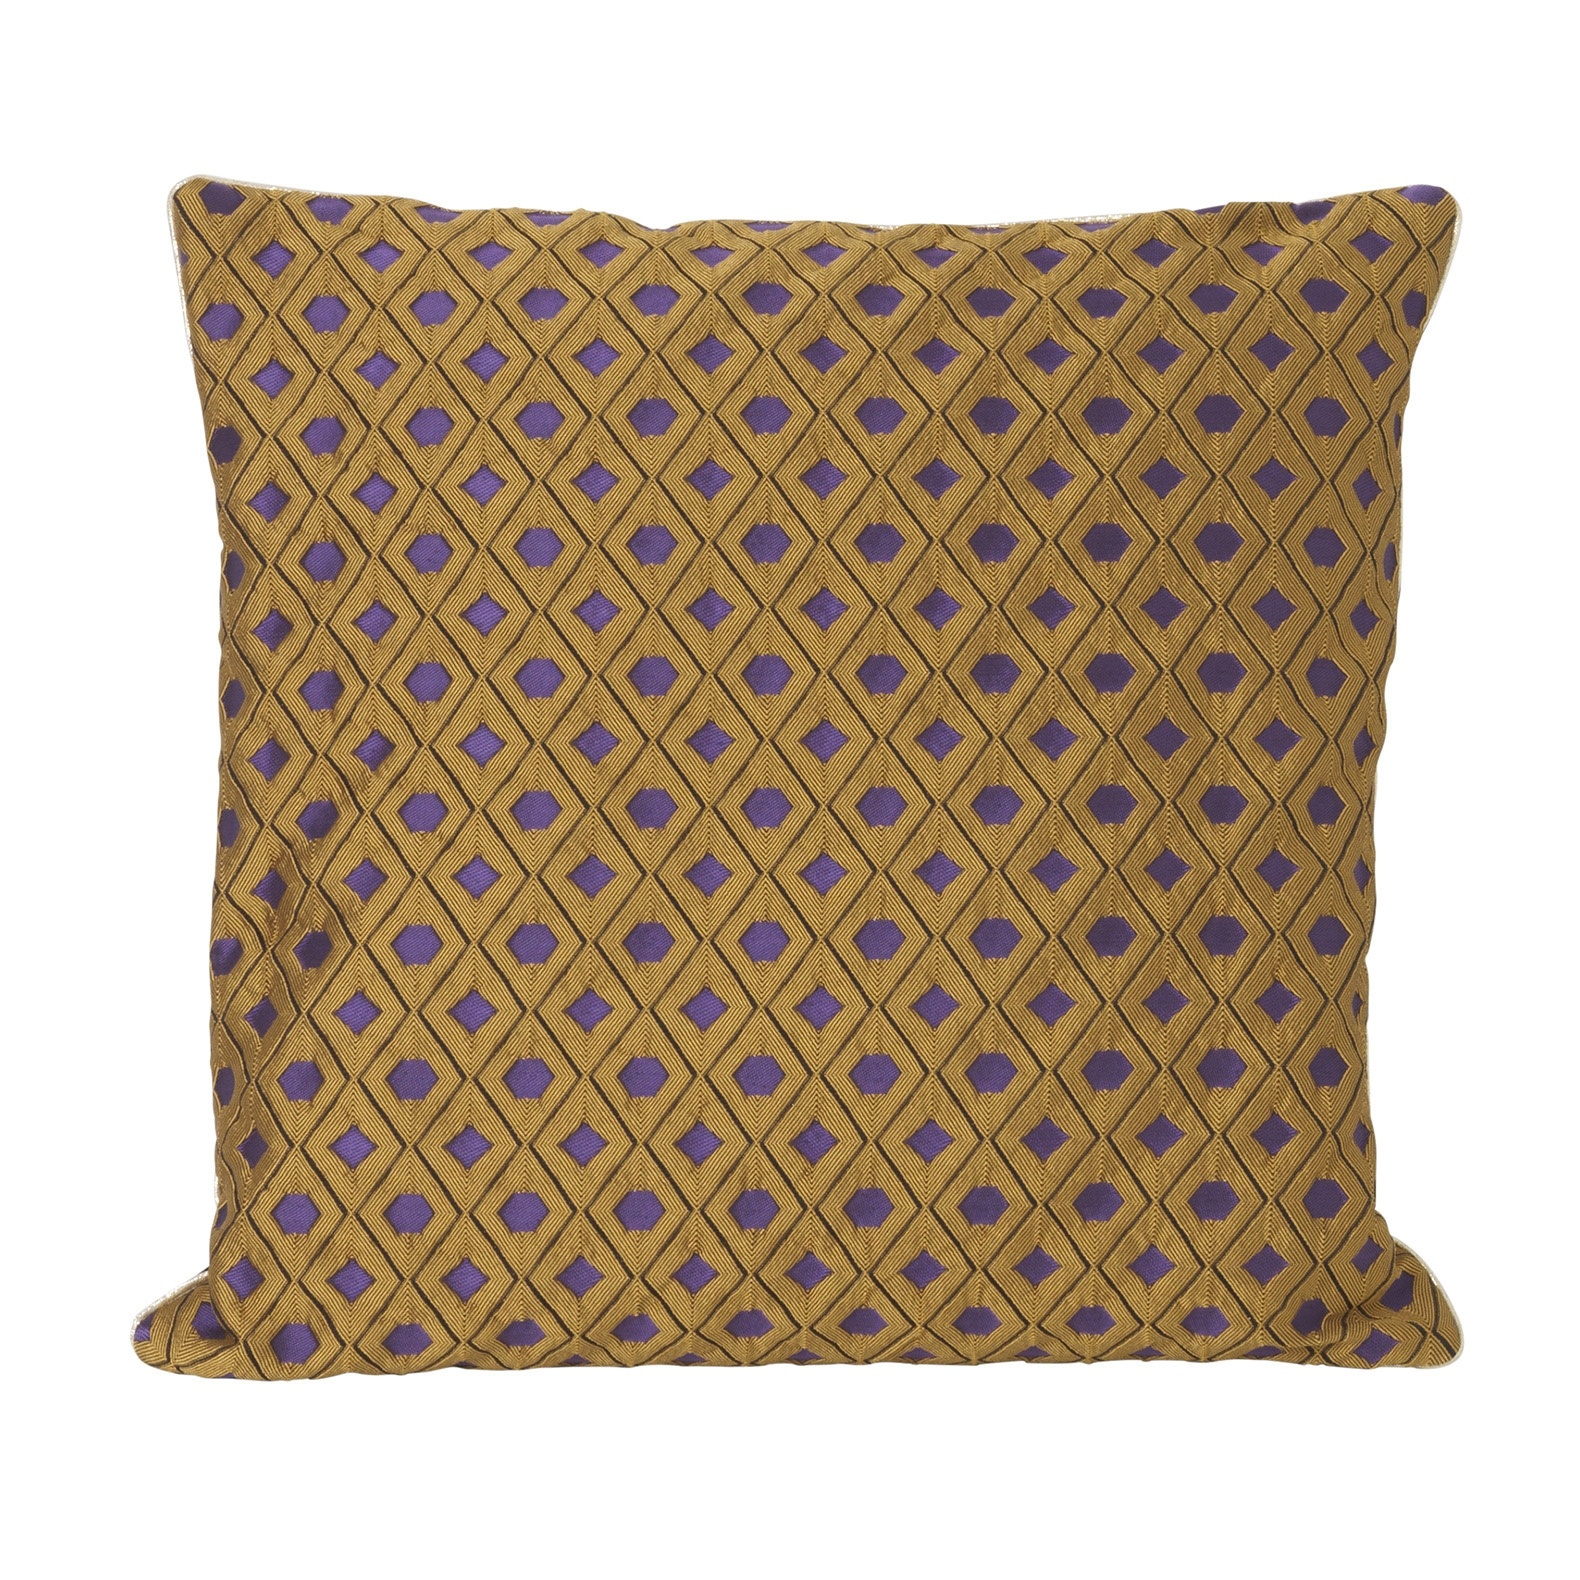 Salon cushion - Mosaic-1